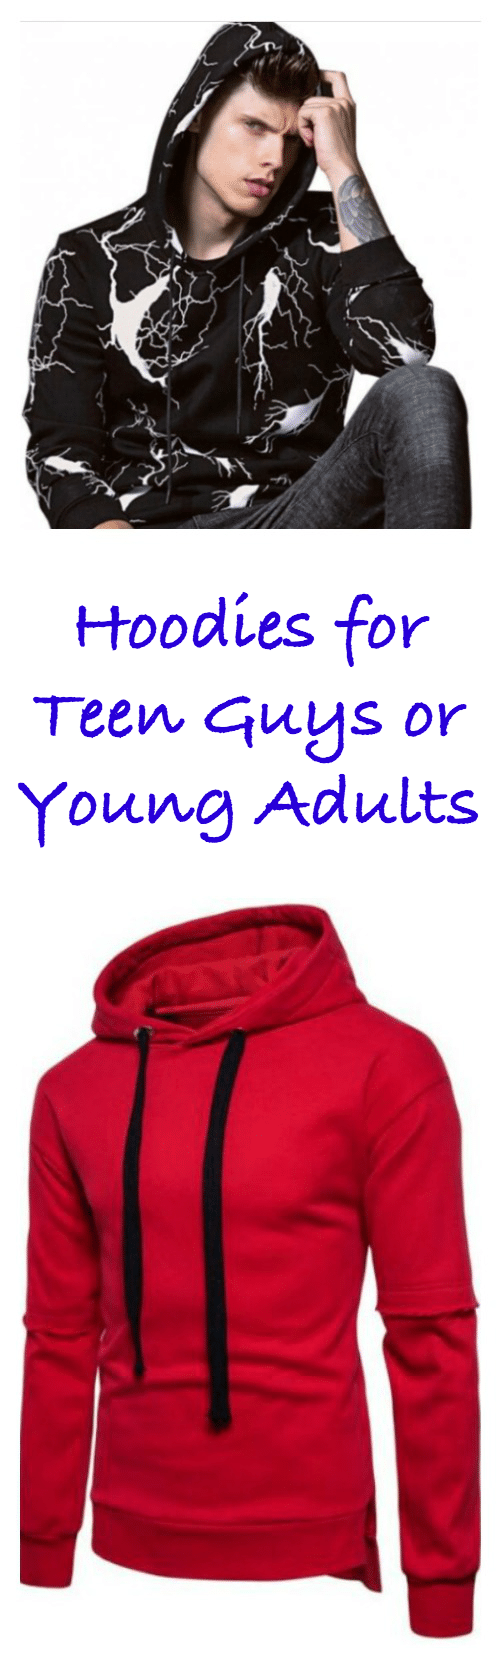 "A go-to gift for teen guys and young adults (or even what many call the feared millennial) is hoodies!! When it comes to casual fashion, or just casual clothing for those who would never consider the ""fashion"" part, you can't beat an awesome hoodie."